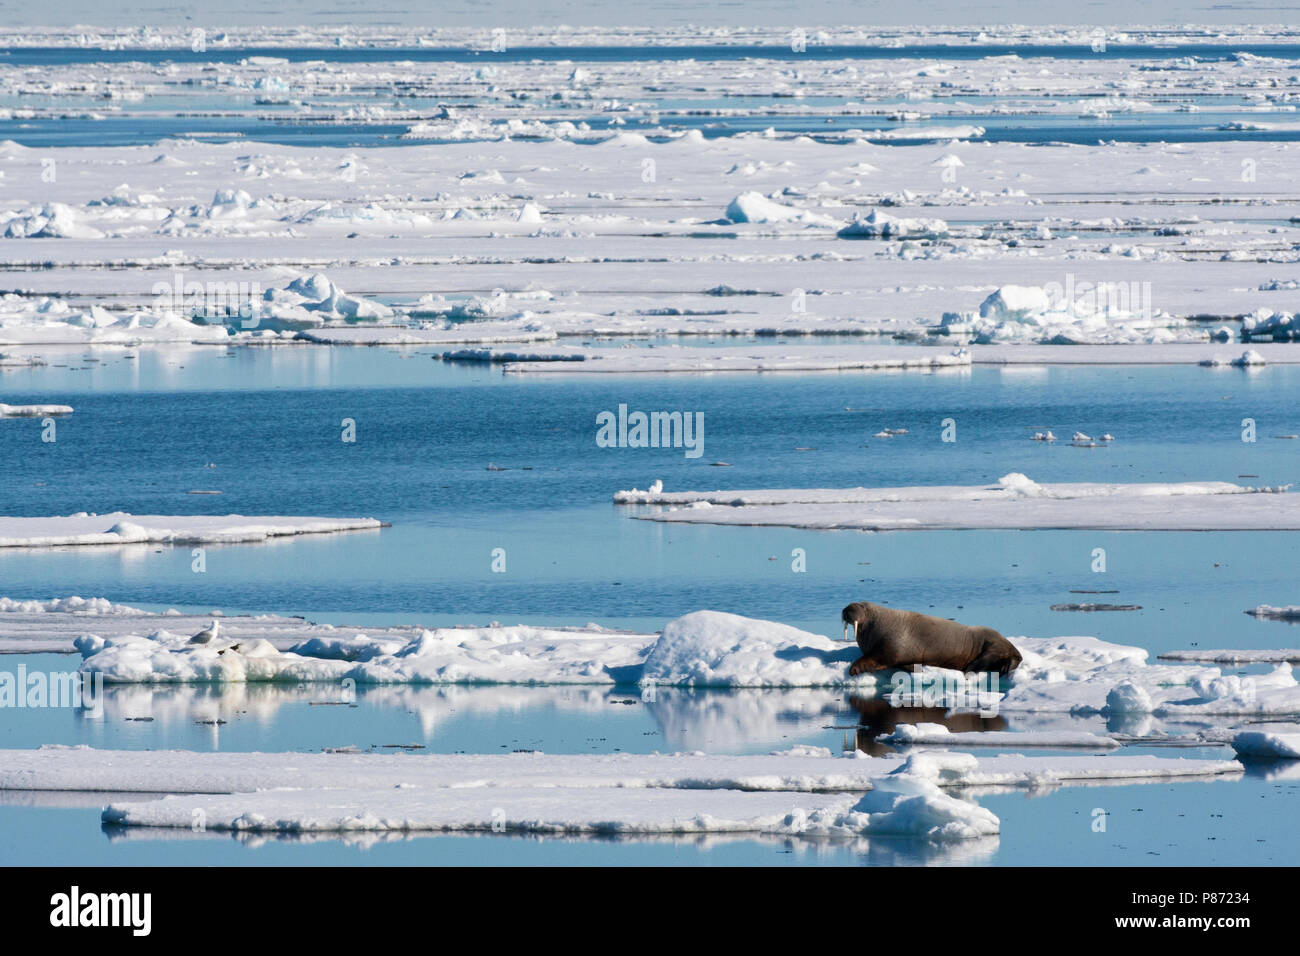 Walrus liggend op het pakijs; Walrus lying on the pack ice - Stock Image